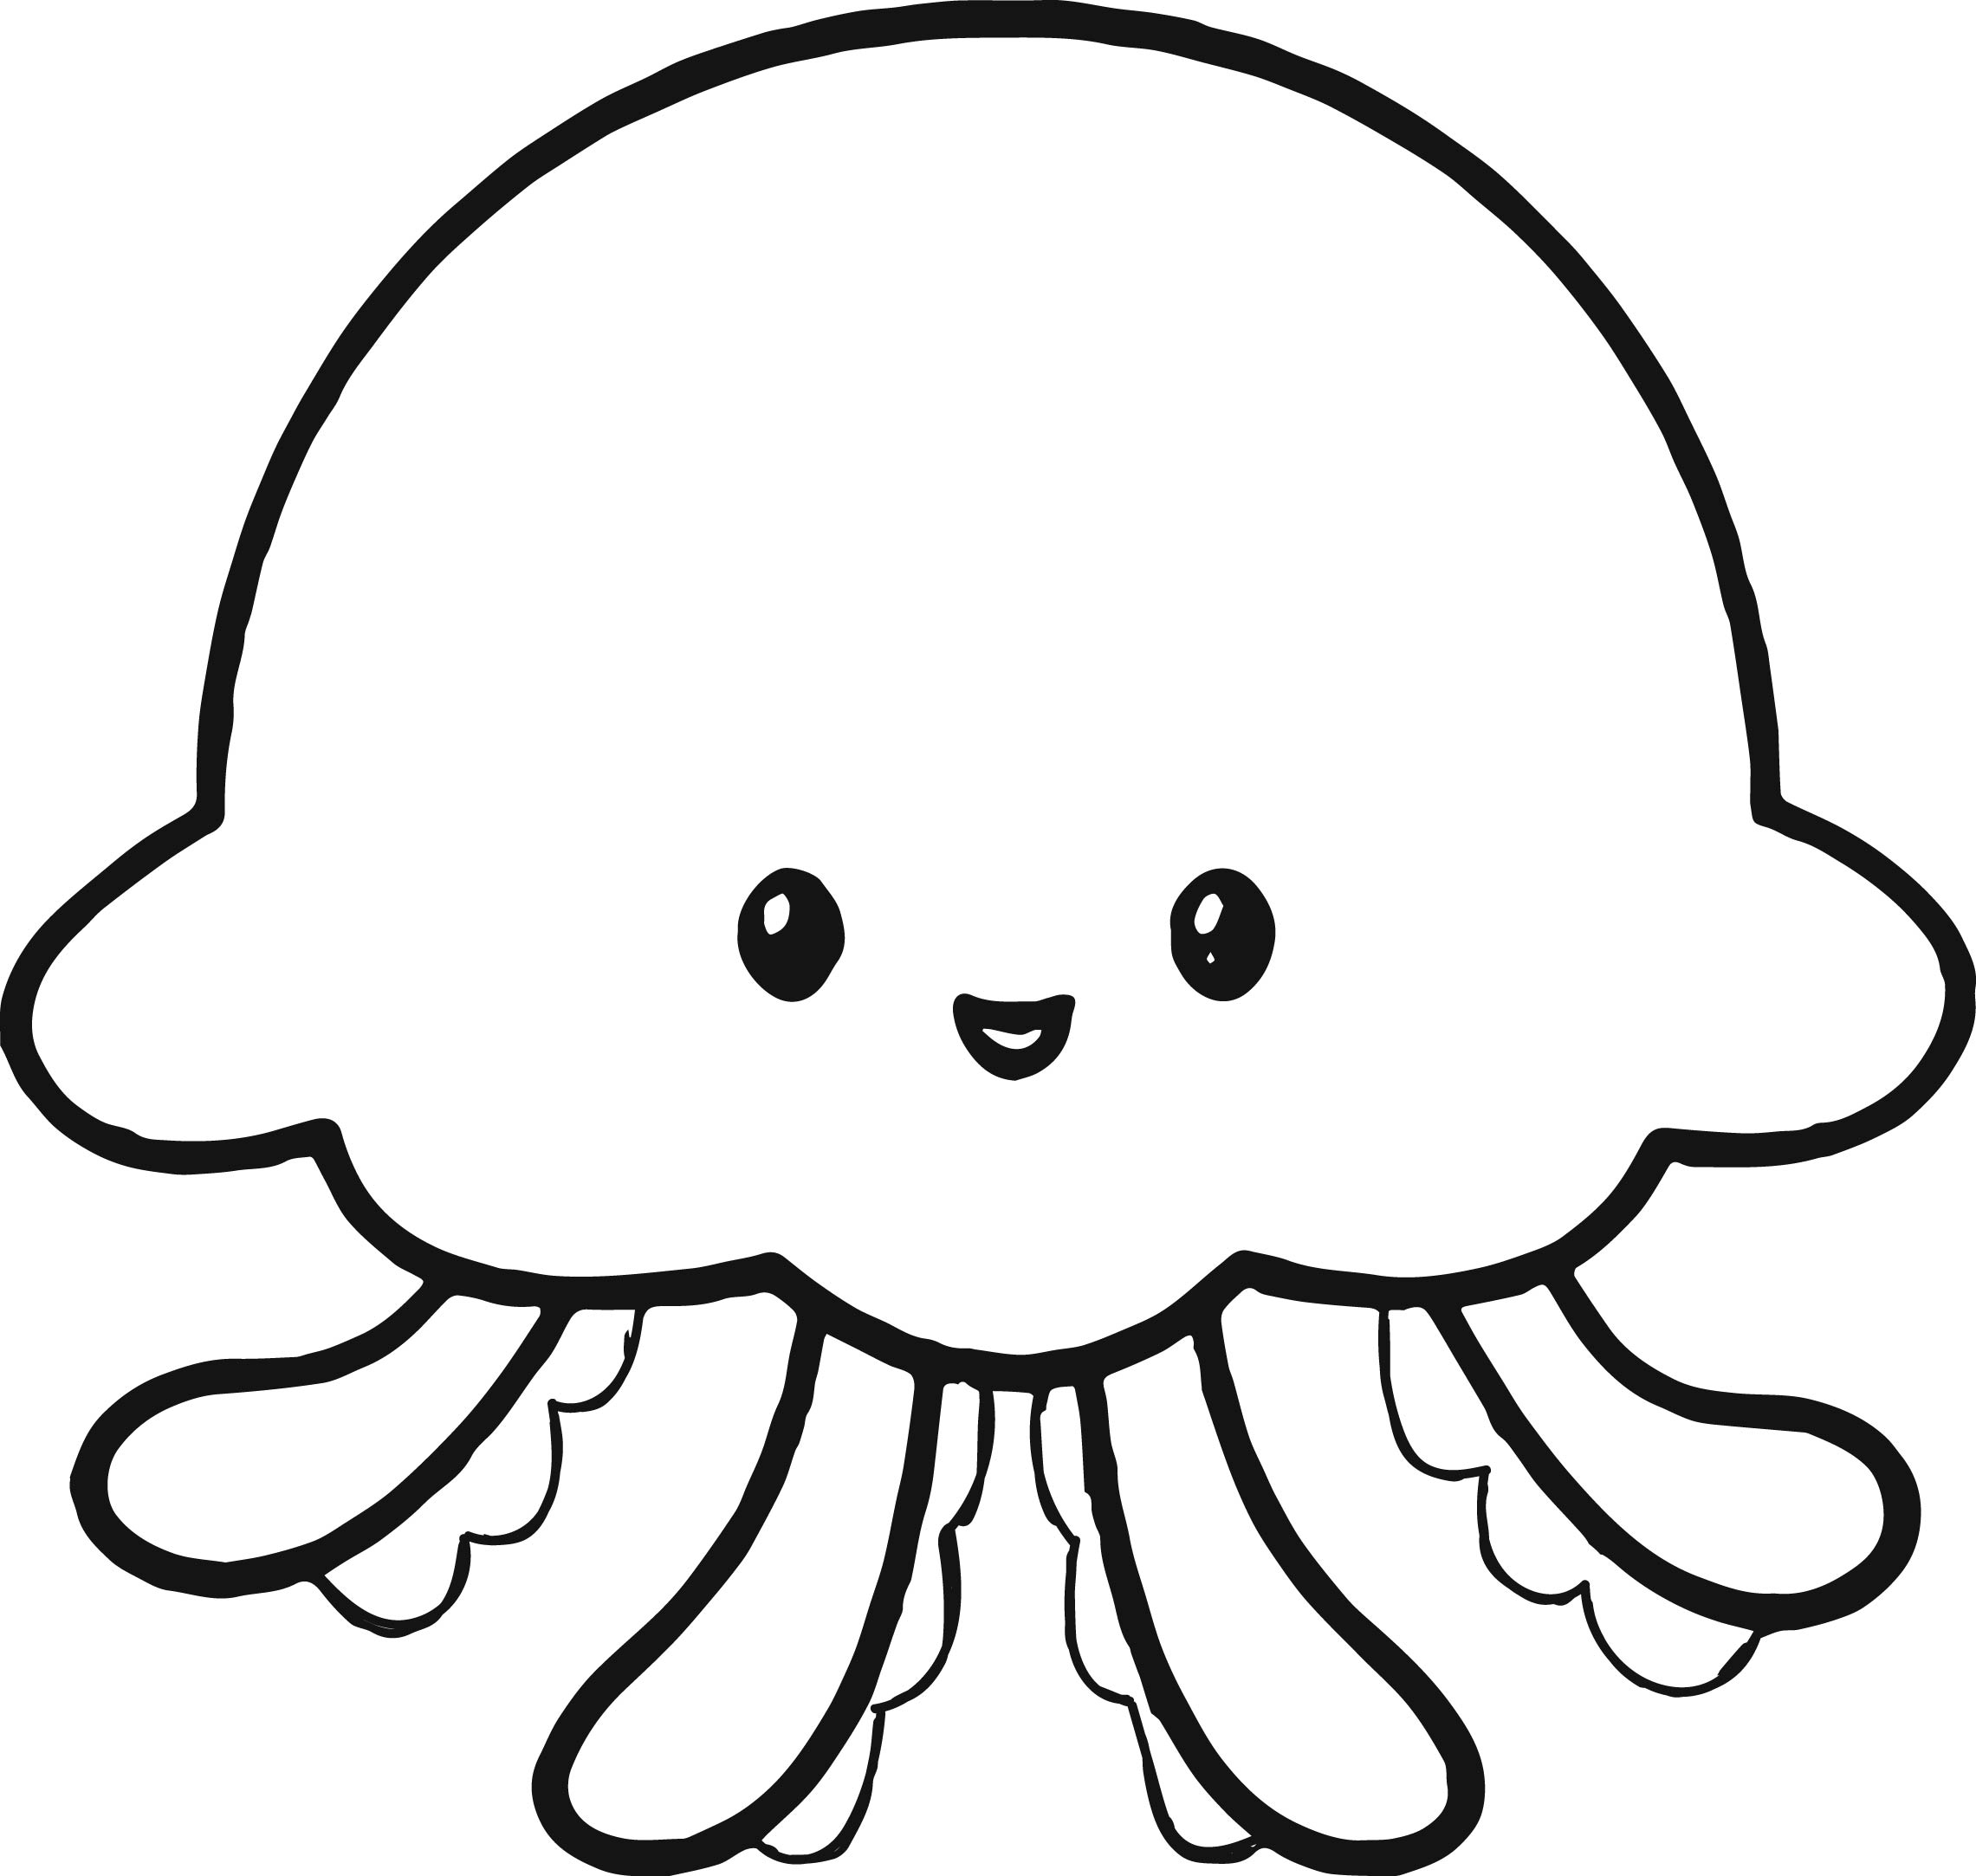 jellyfish coloring sheet jellyfish coloring pages to download and print for free sheet jellyfish coloring